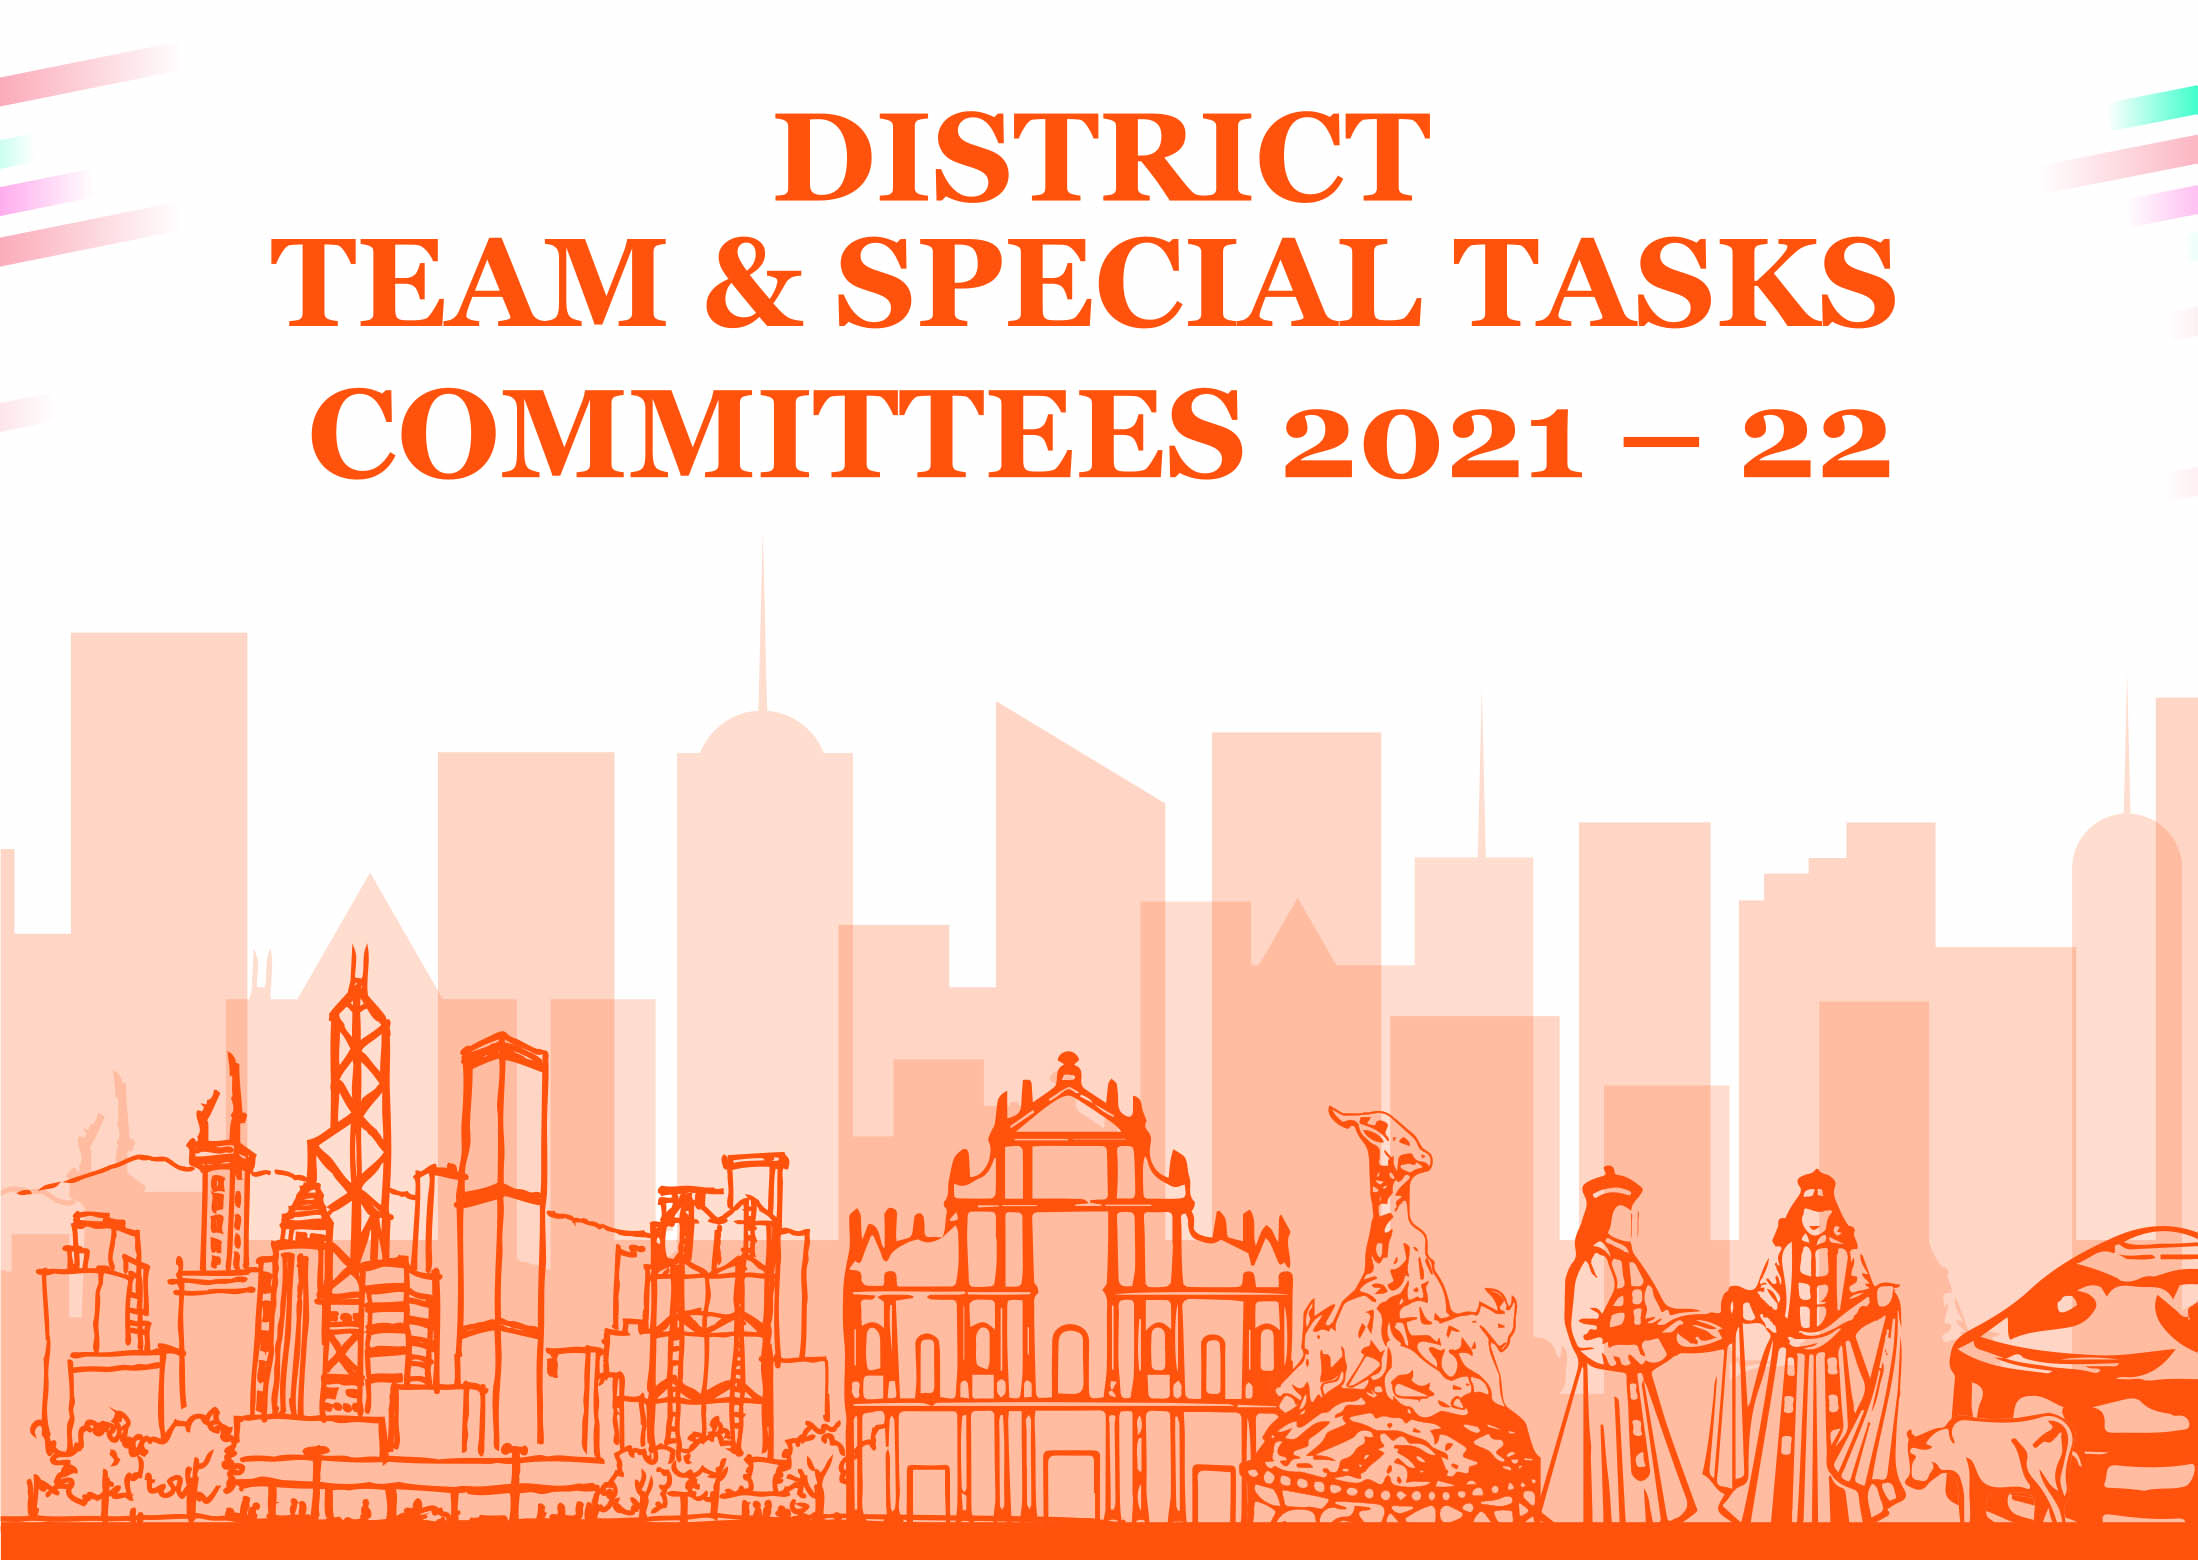 DISTRICT TEAM & SPECIAL TASKS COMMITTEES 2021 – 22